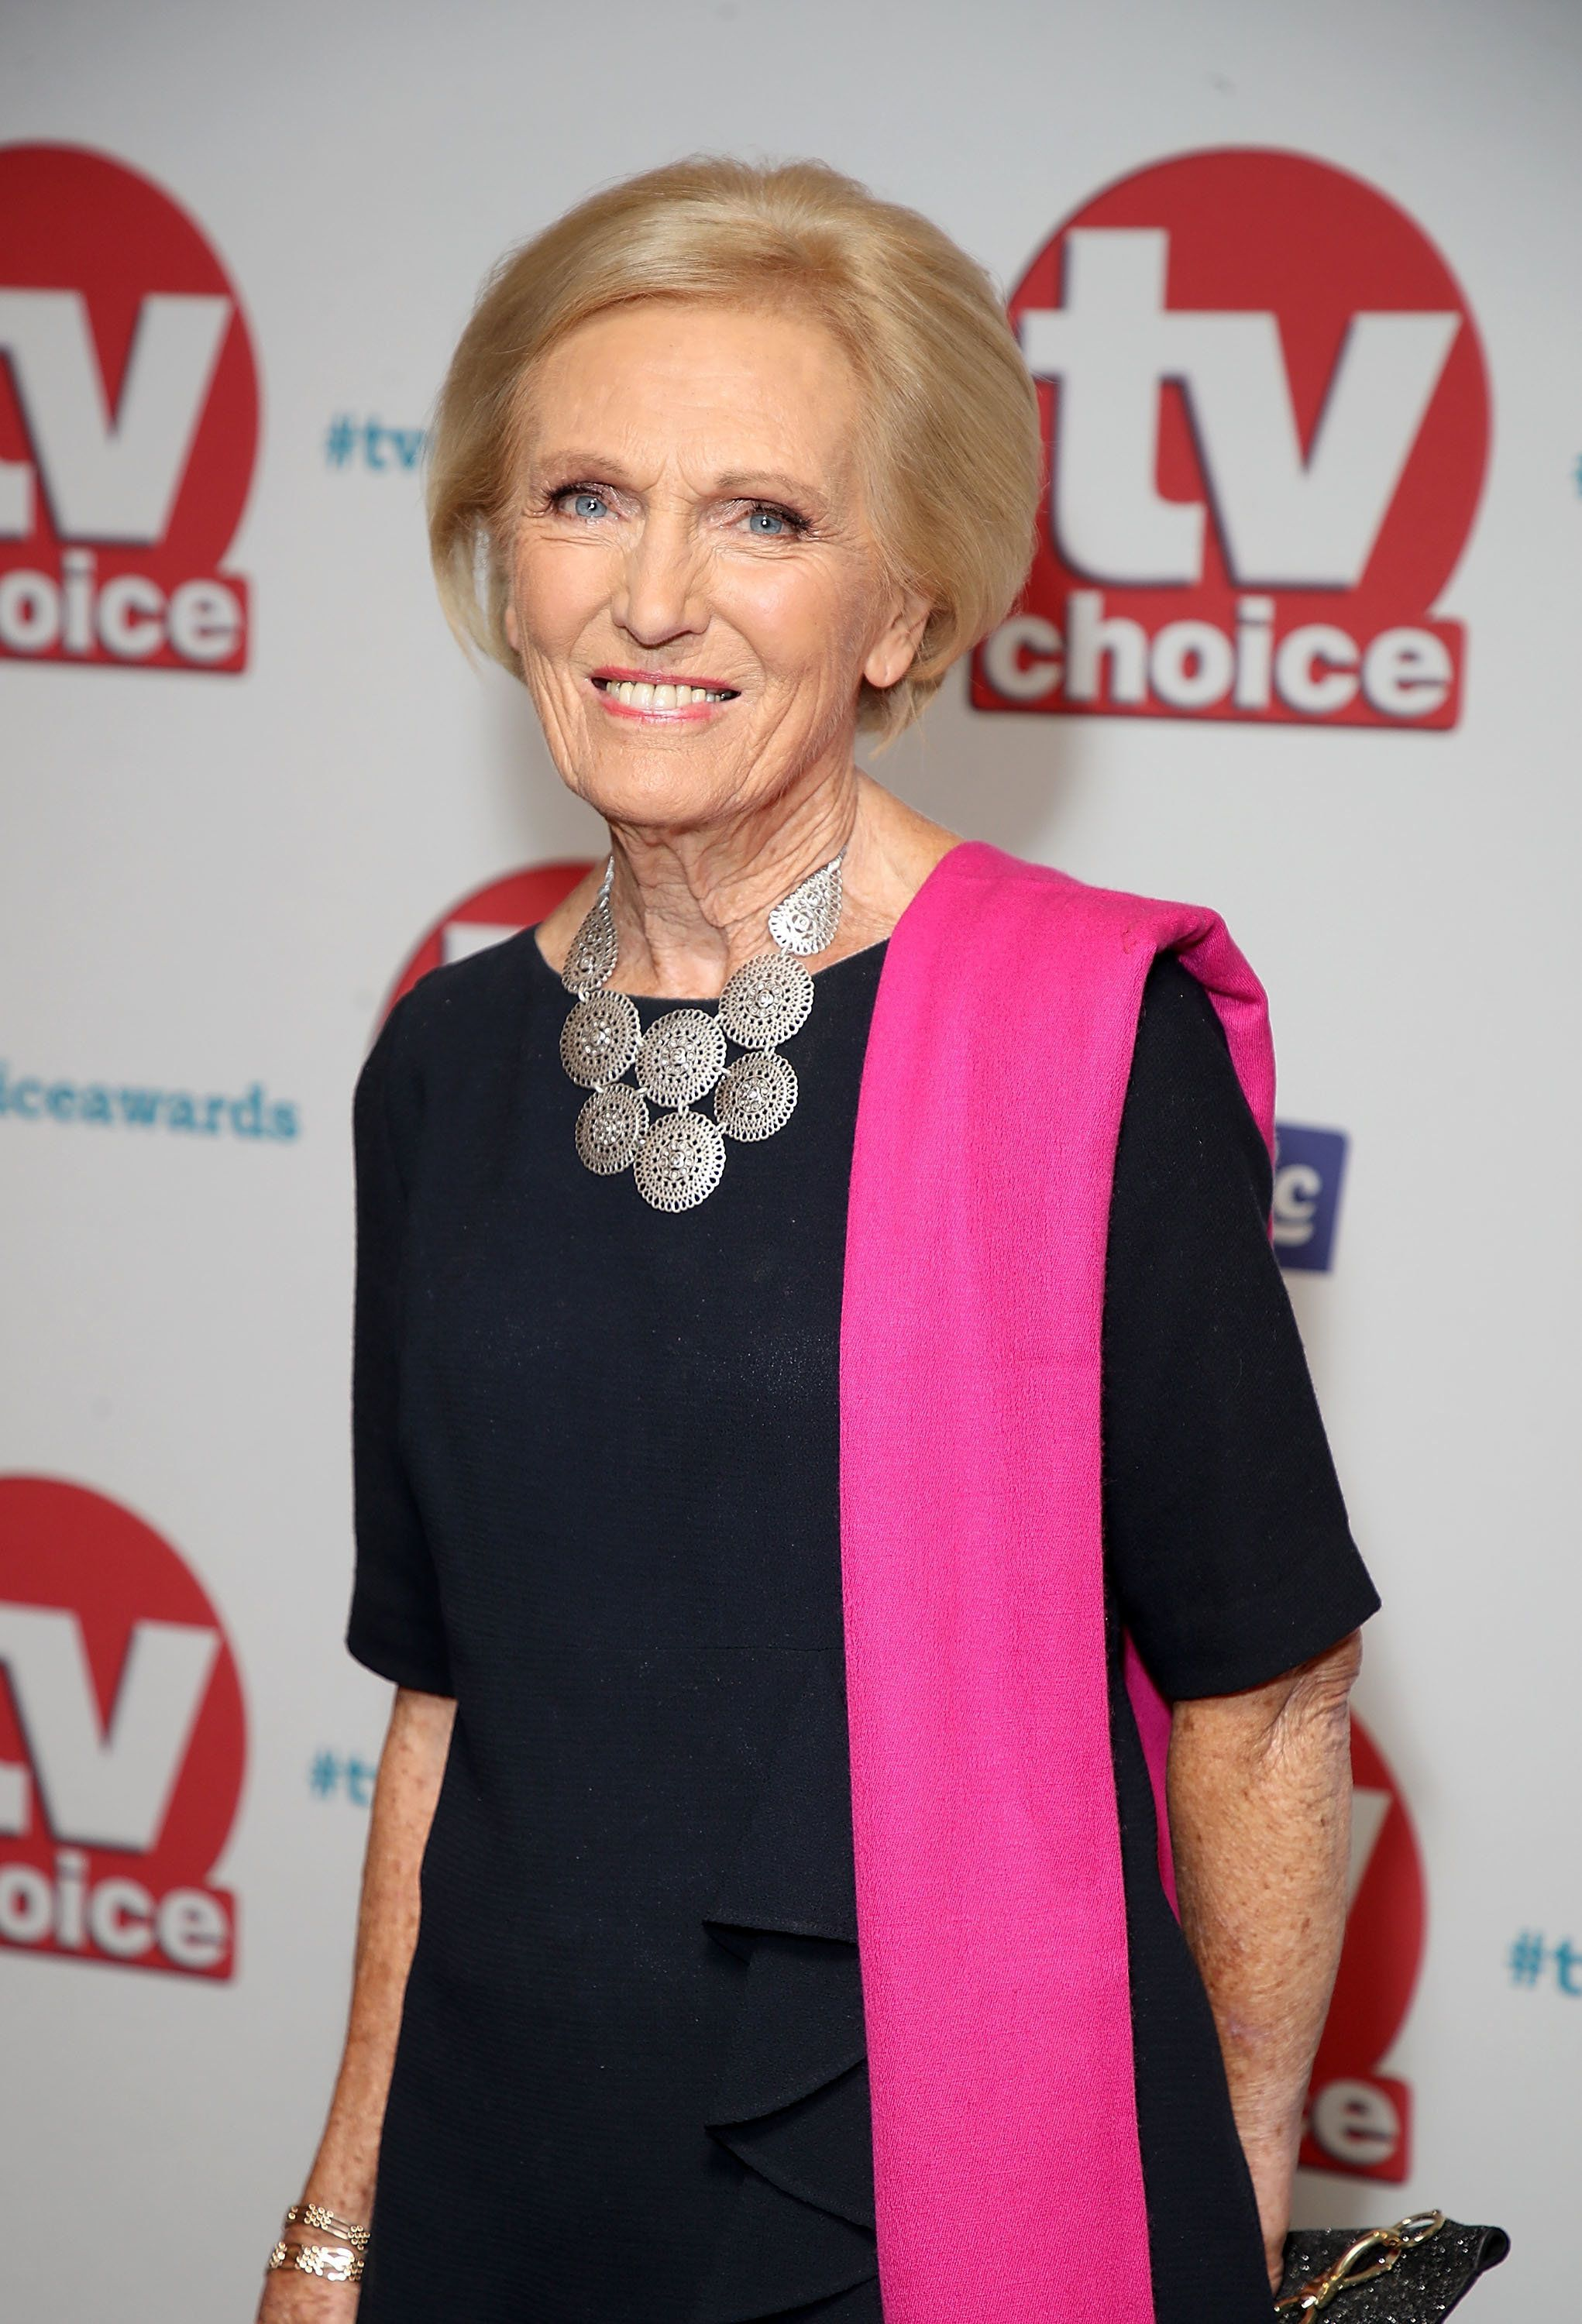 Mary Berry Finally Shares Her Thoughts On Great British Bake Off's Channel 4 Debut